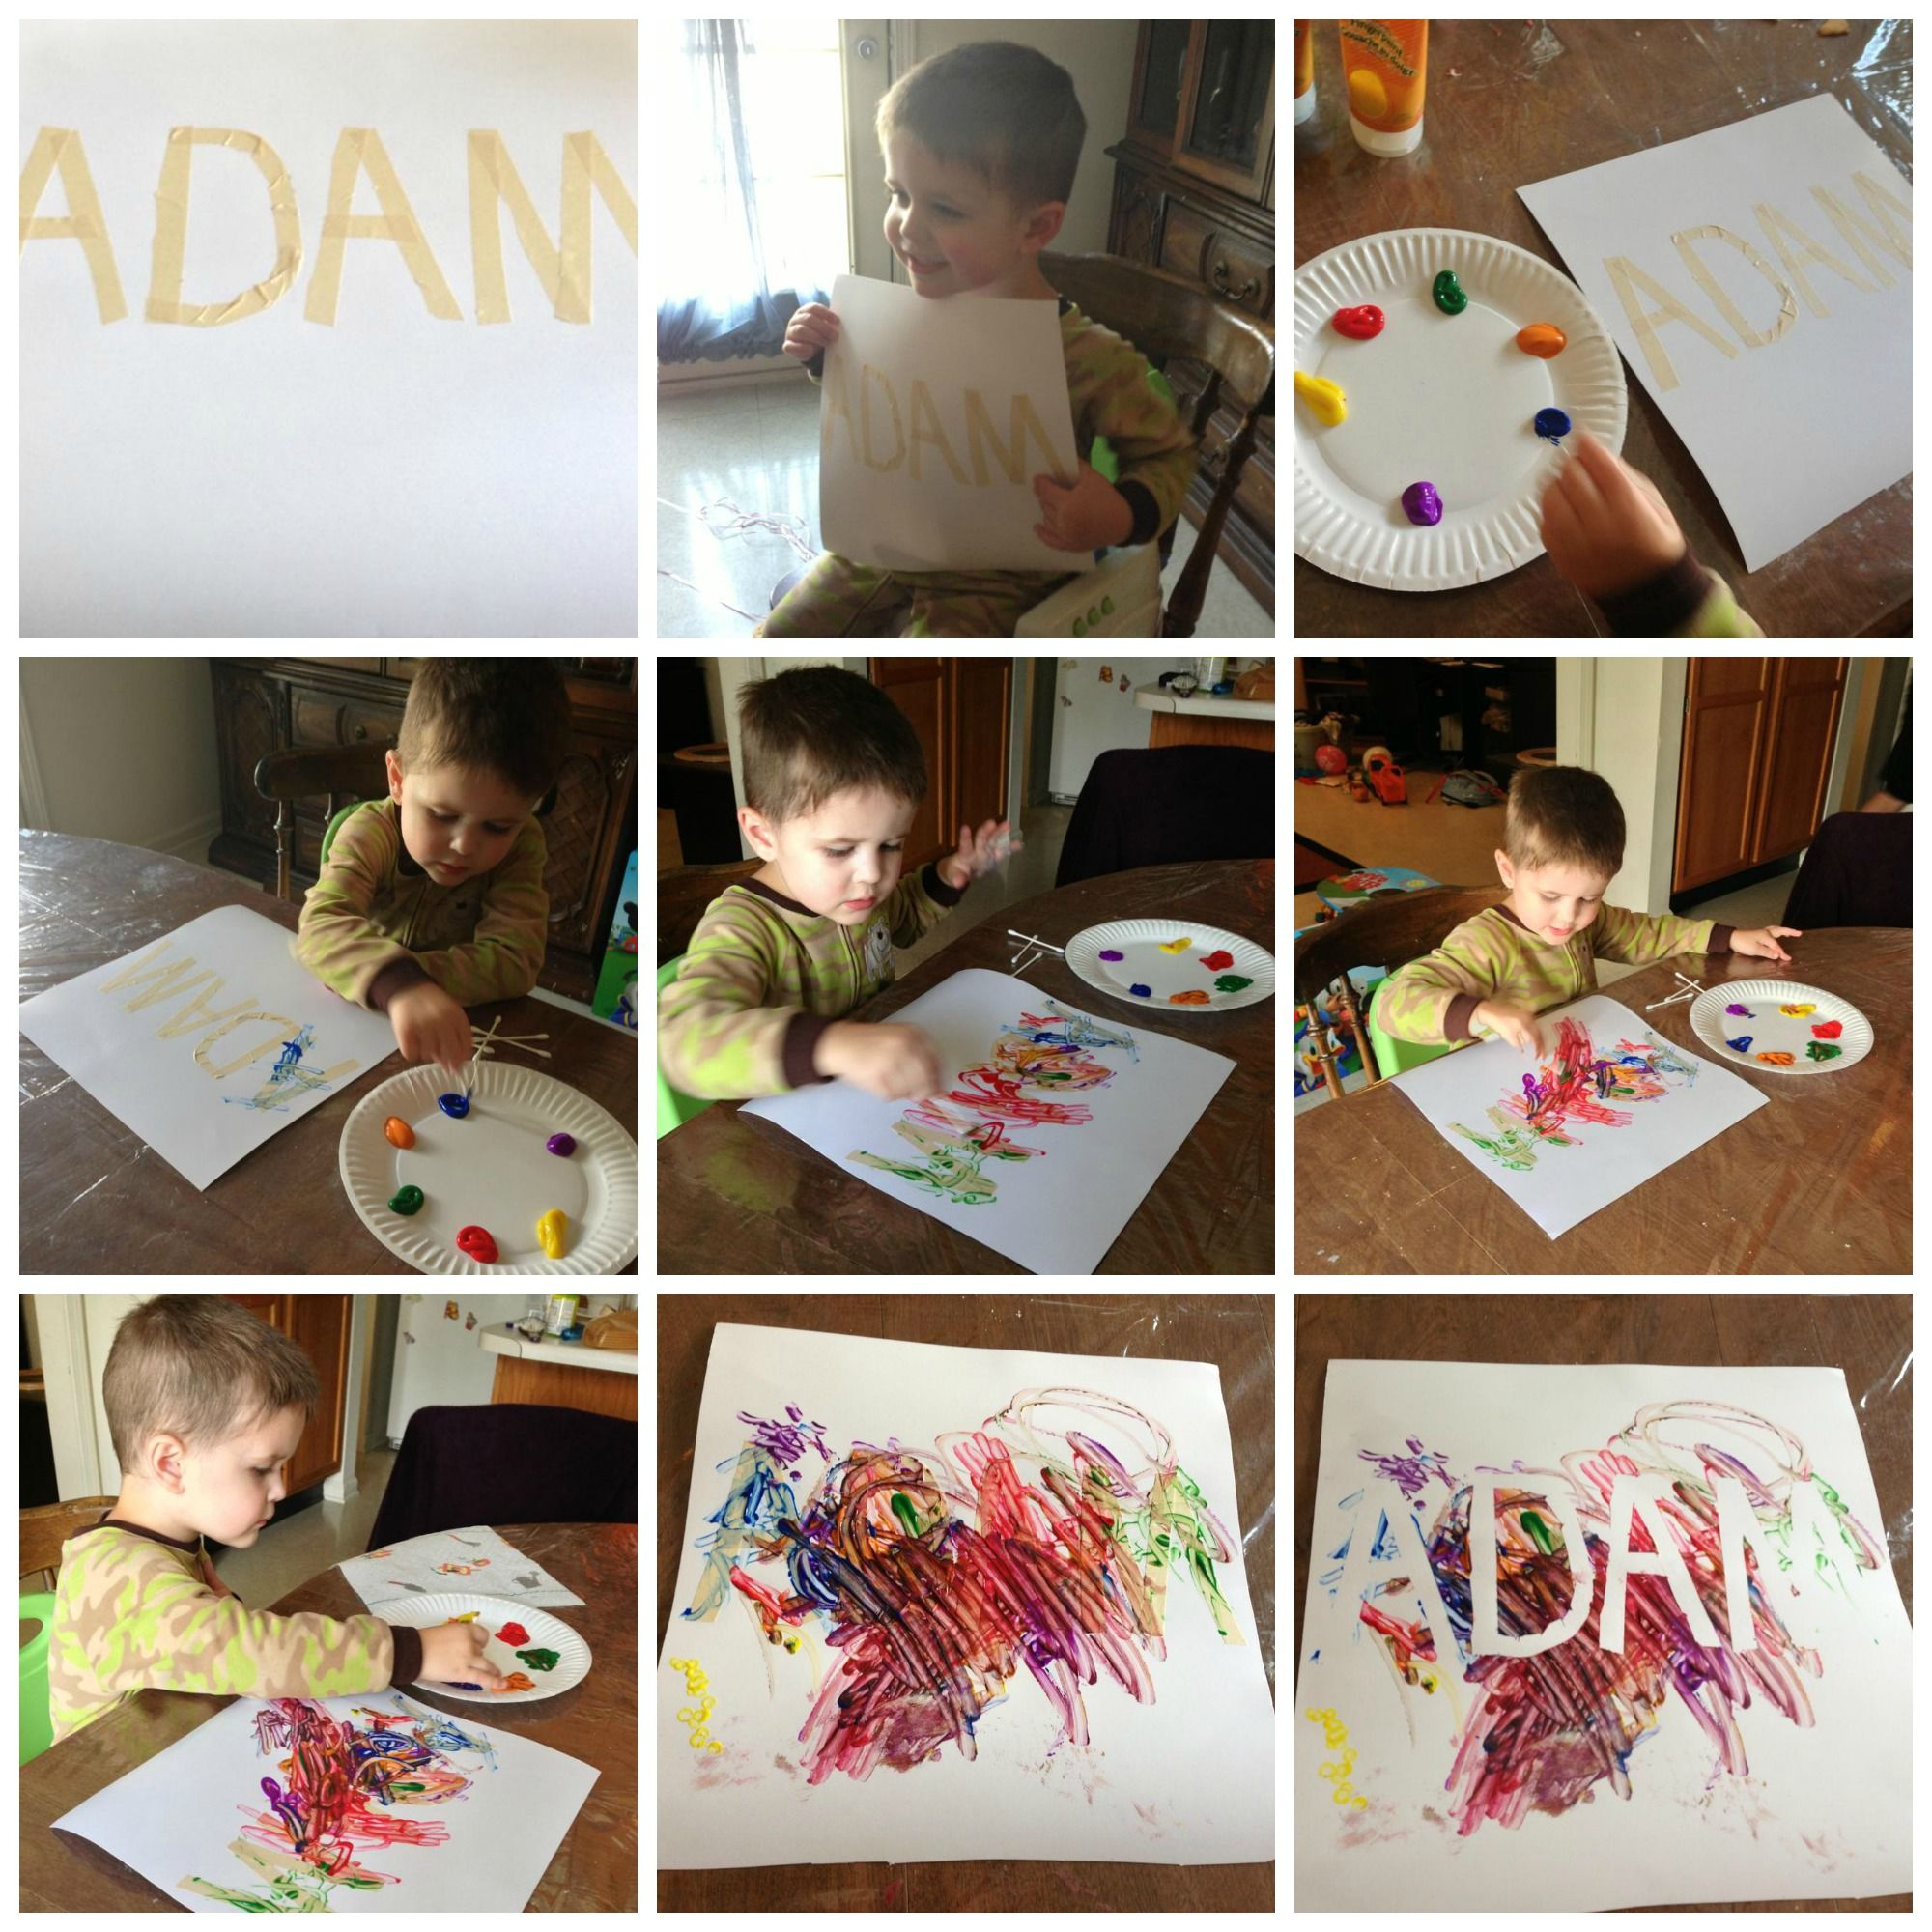 Fun art projects at home